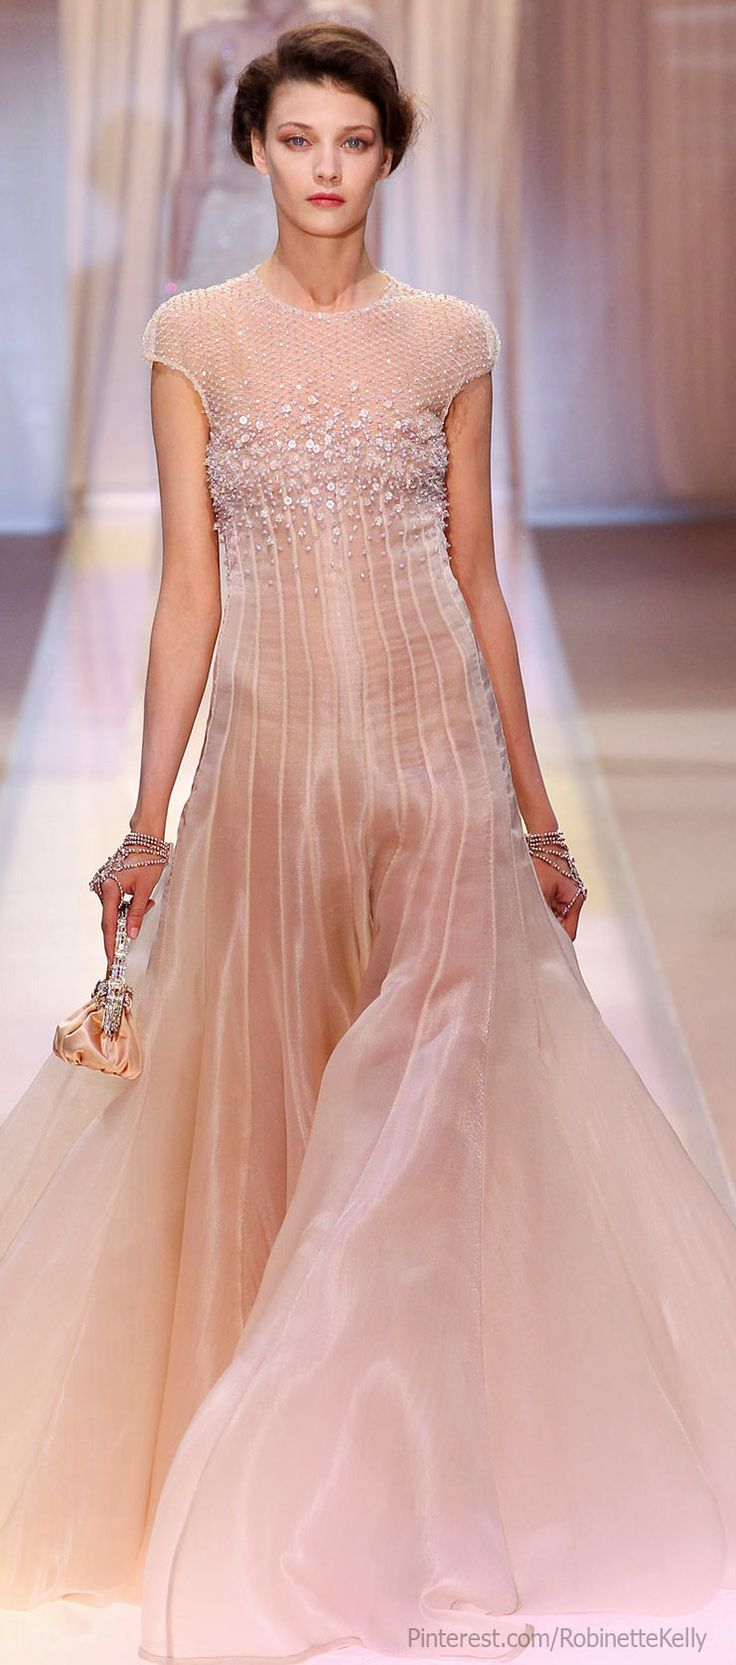 Armani Privé Haute Couture | F/W 2013 - i like the dress but, frankly, it looks awful on this model who has no shape.